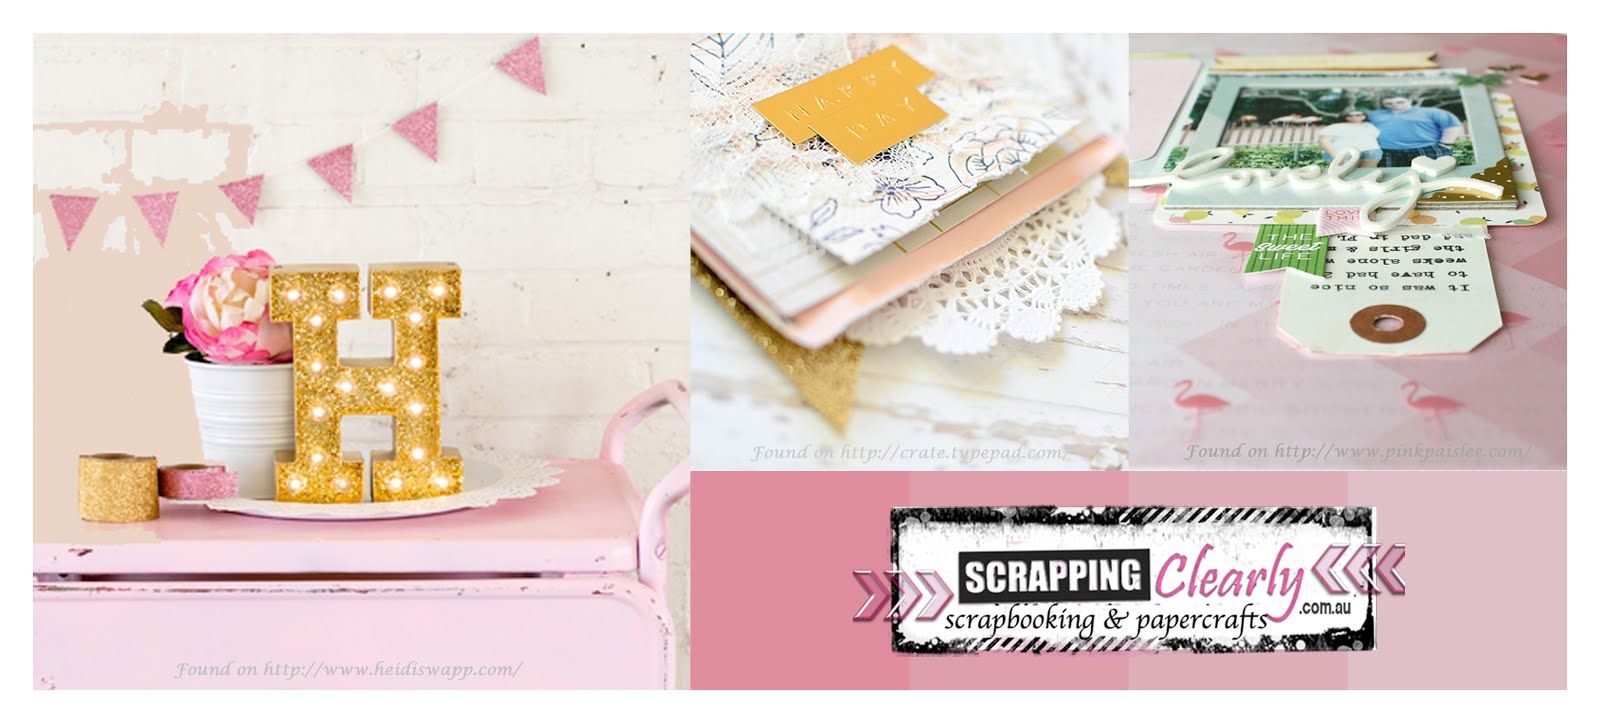 Scrappingclearly Scrapbooking and Papercrafts